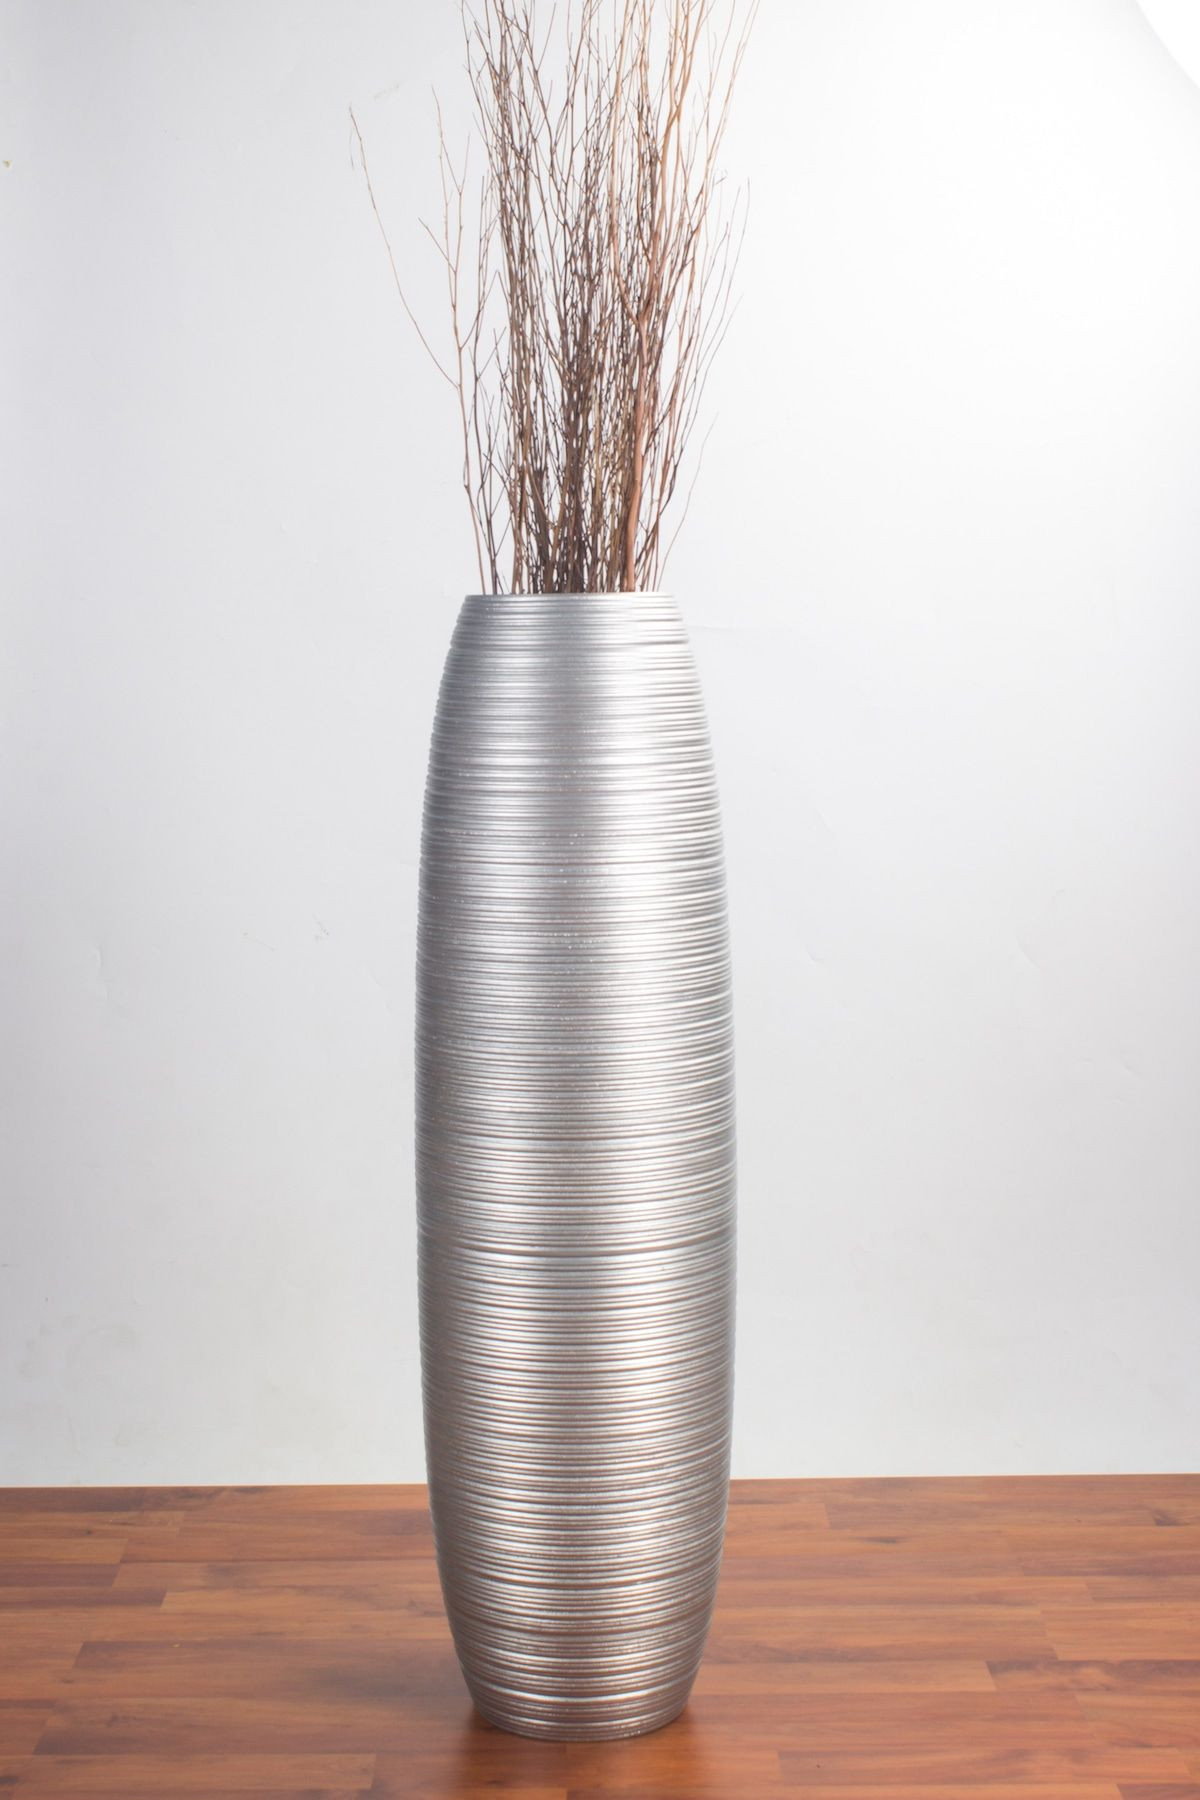 Bamboo Vases for Sale Of 24 Inch Vase Pictures Tall Floor Vase 36 Inches Wood Silver Home Intended for 24 Inch Vase Pictures Tall Floor Vase 36 Inches Wood Silver Home Pinterest